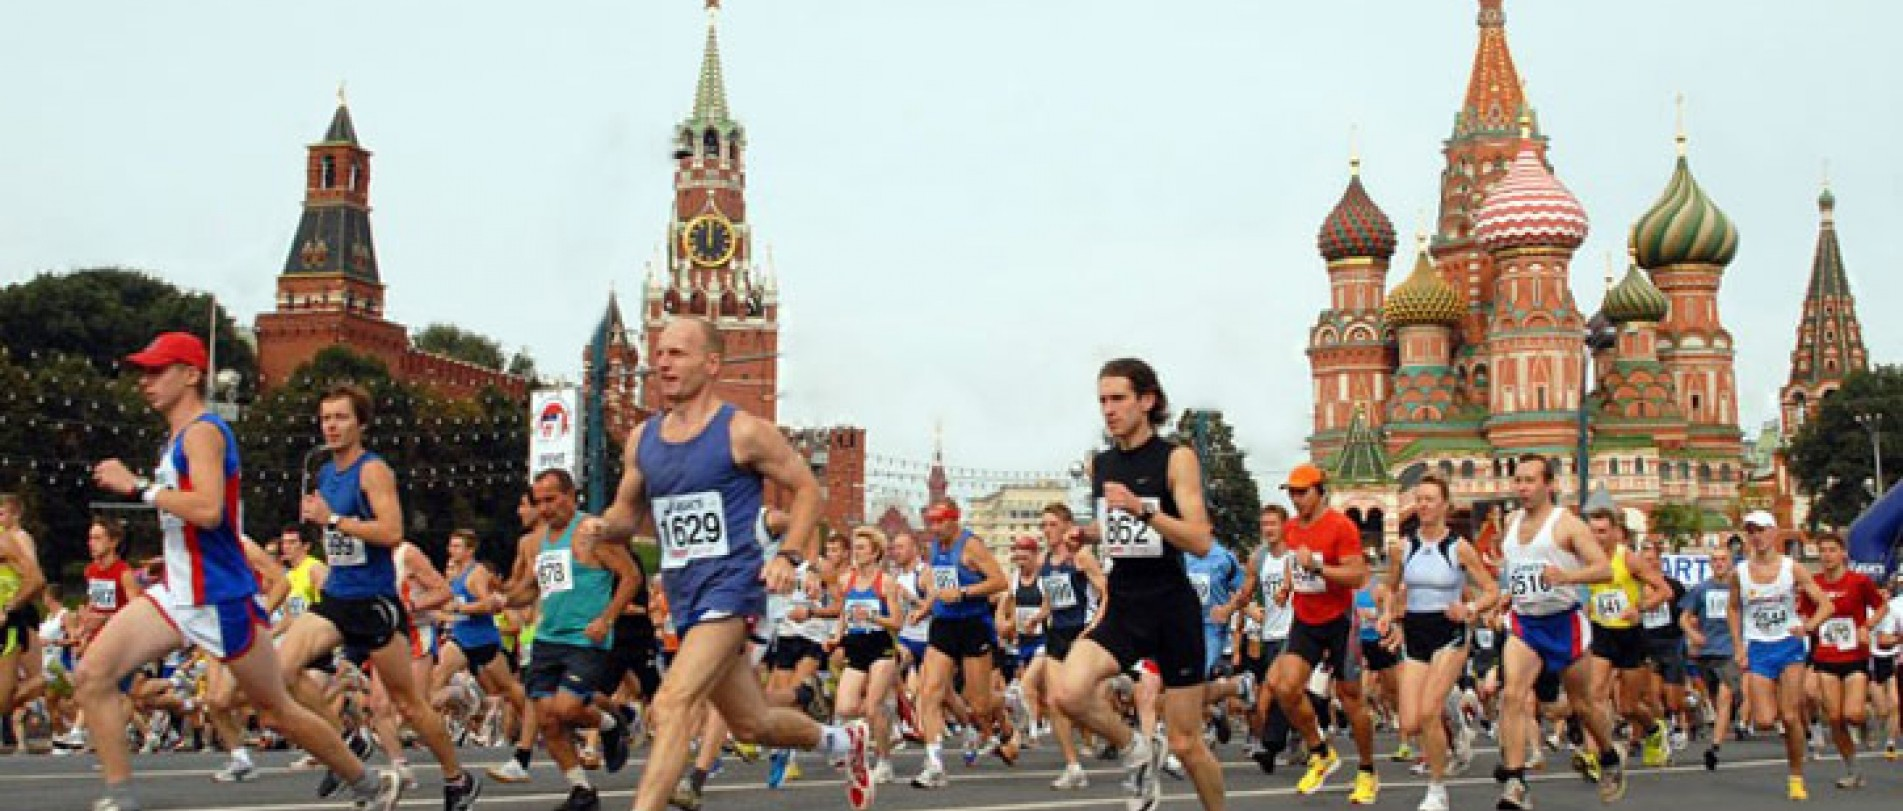 The 2020 Moscow Marathon set to be run as planned on September 20